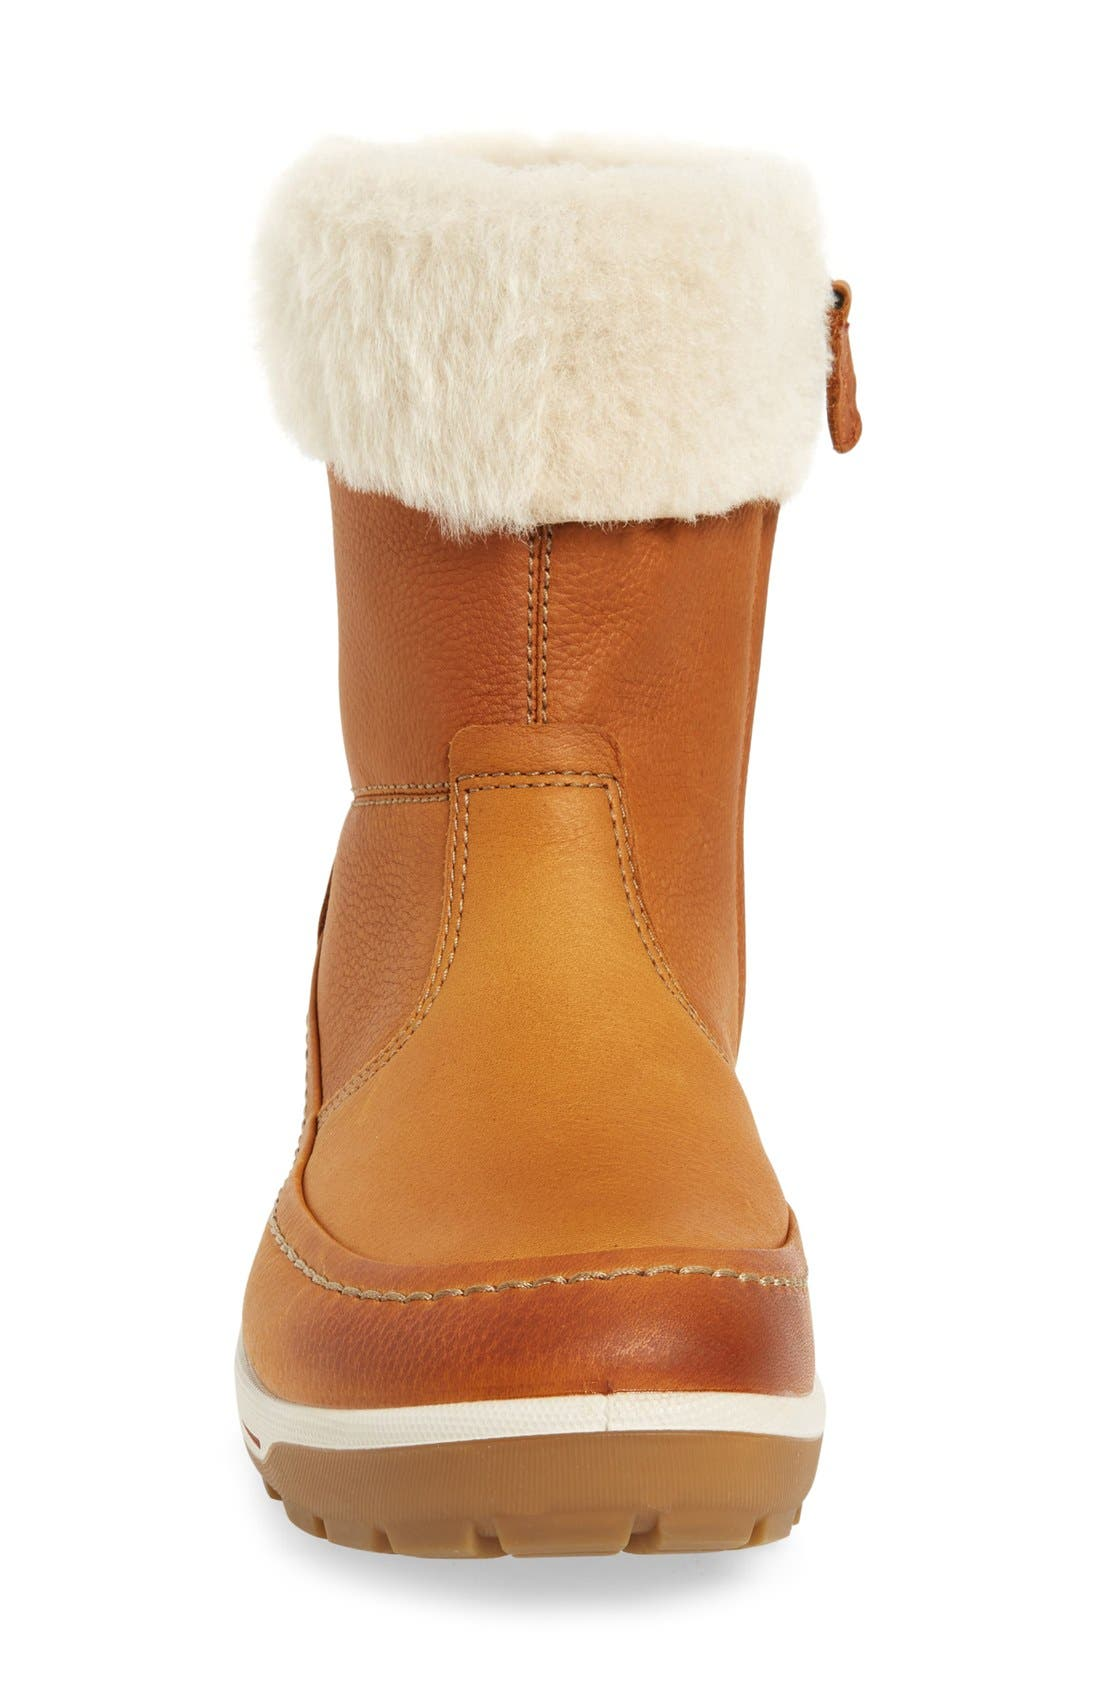 Trace Water Resistant Bootie,                             Alternate thumbnail 3, color,                             249